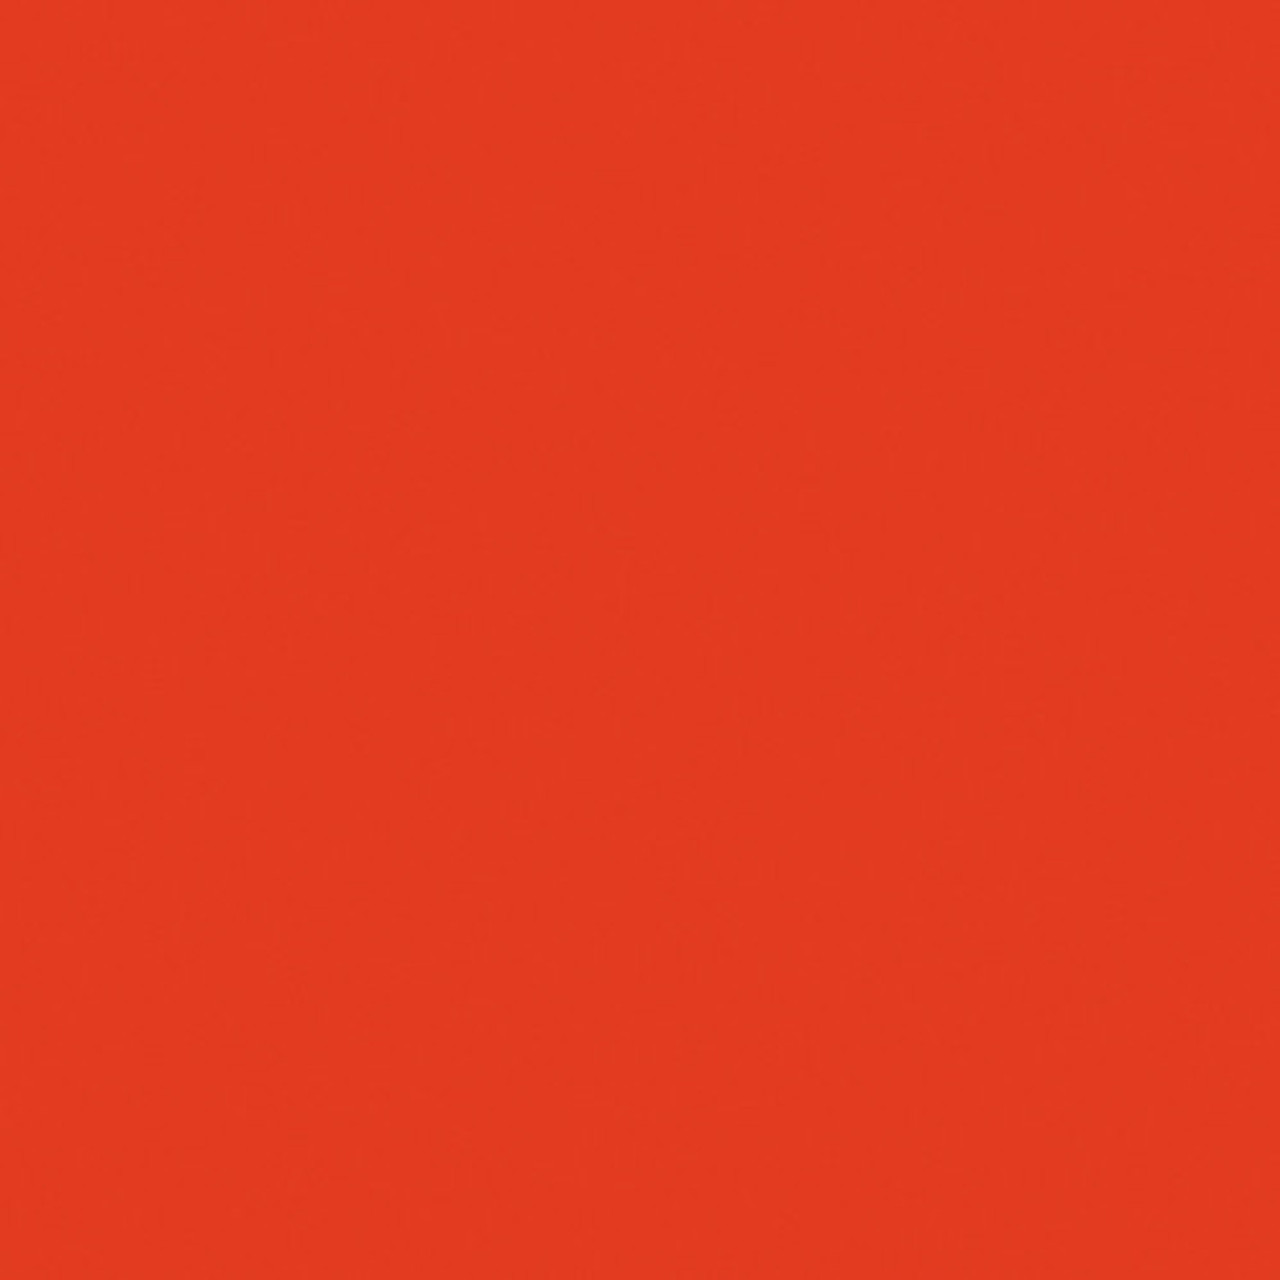 Rosco Calcolor Sheet #4690: 90 Red, Gels